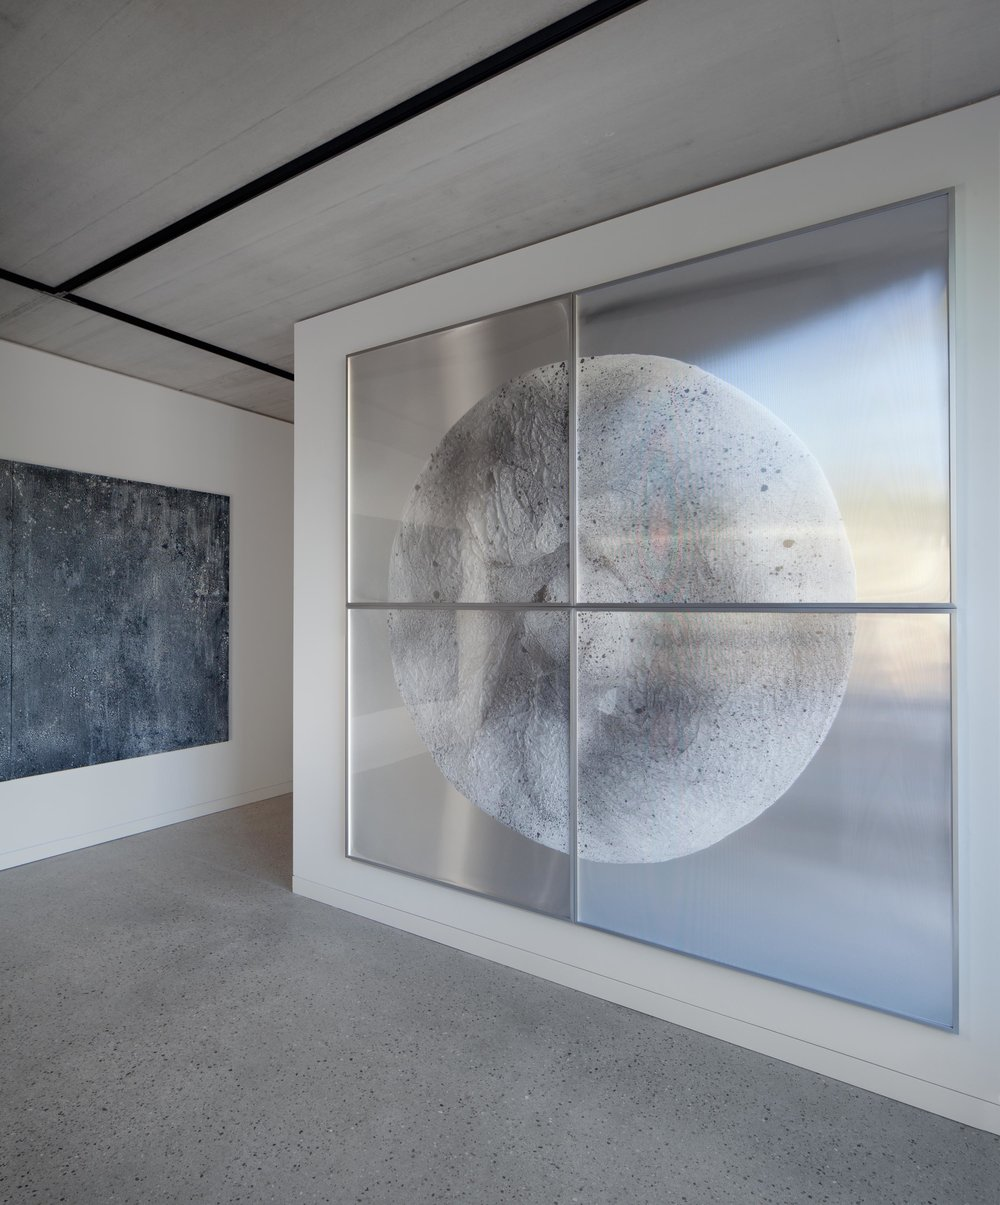 Verklärte Nacht (Transfigured Night) / Part V (Quadriptych),  2018 - Installation view Ink on Xuan paper on mirror beneath linear Plexiglas, aluminium frame 240 x 240 cm (95 x 95 in)